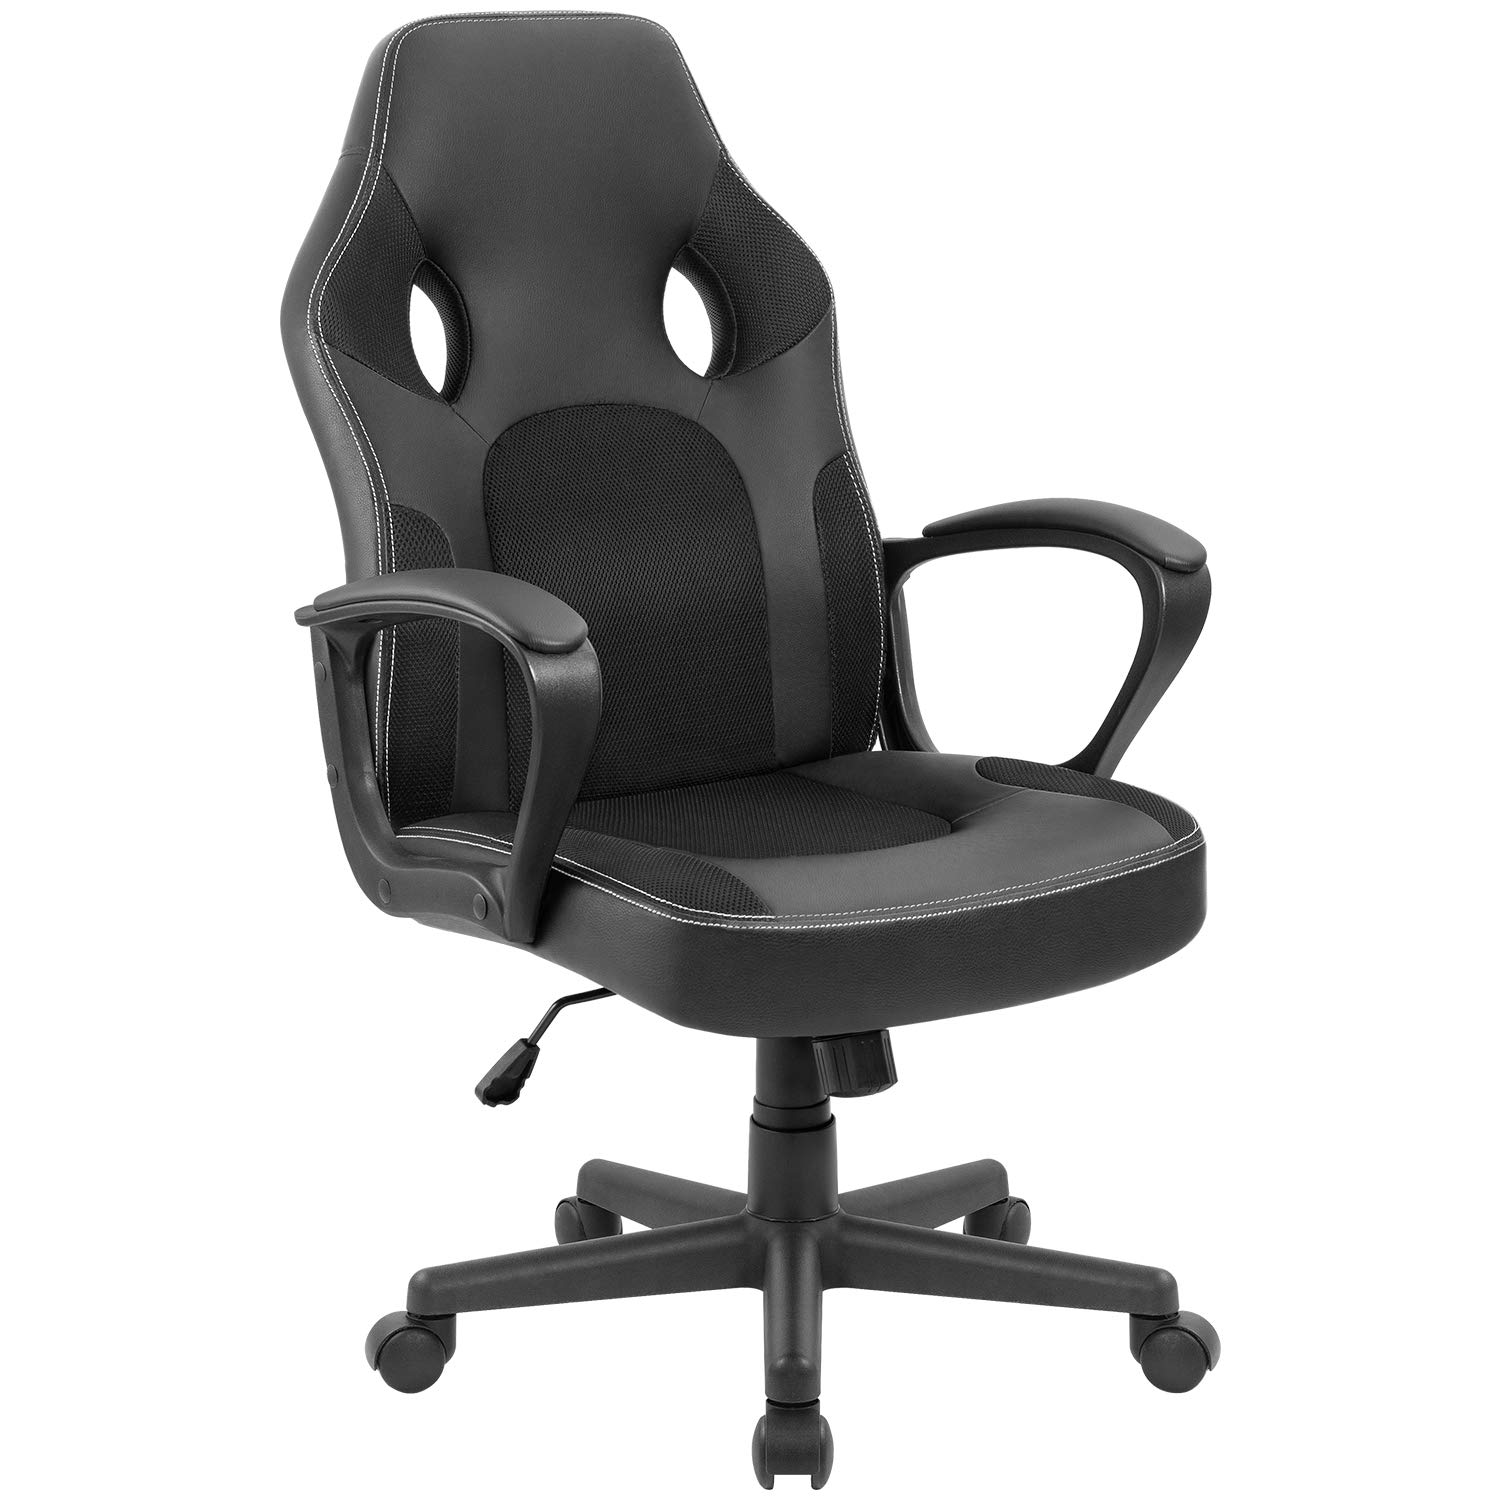 Furmax Office Chair Black Friday Deal 2019